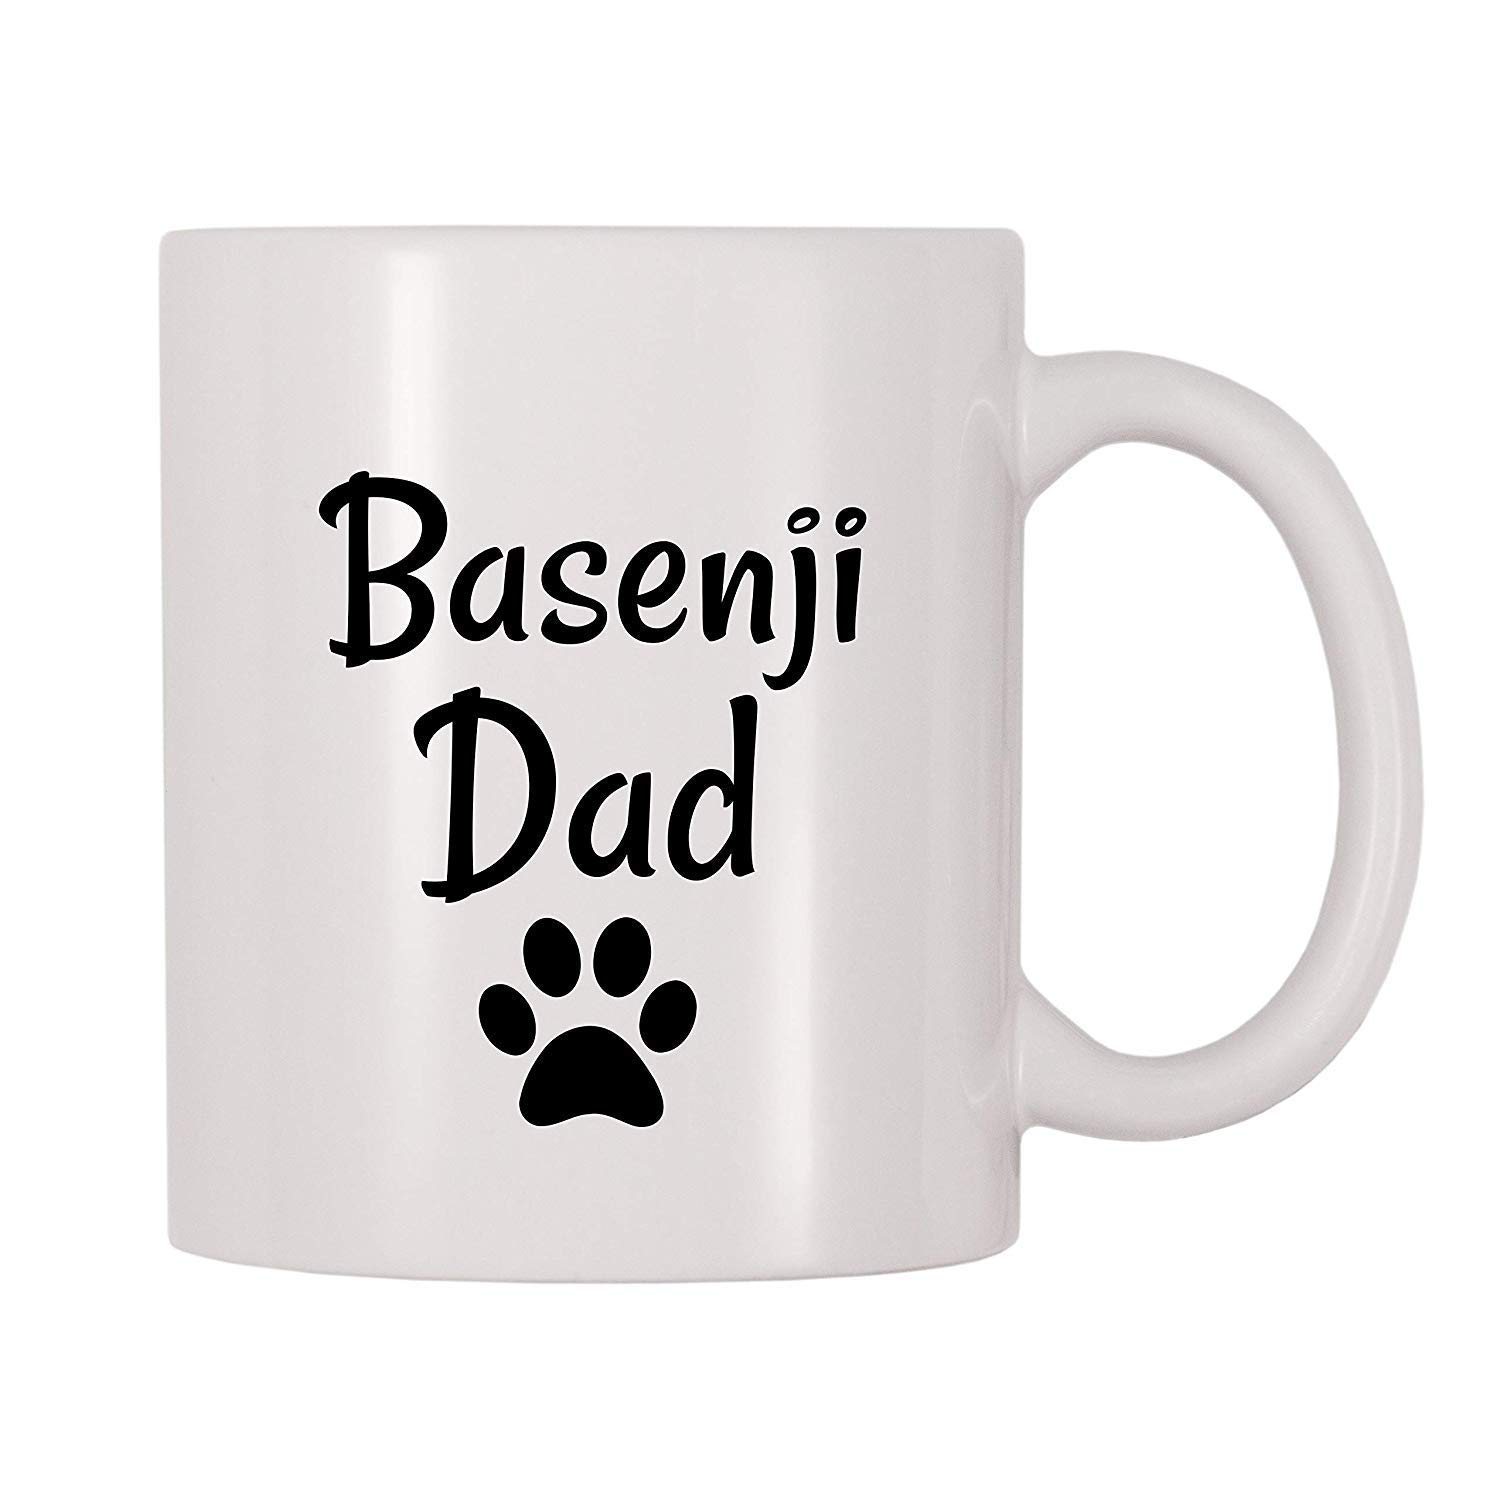 Basenji Dad Coffee 11 Ounces Funny Coffee Mug